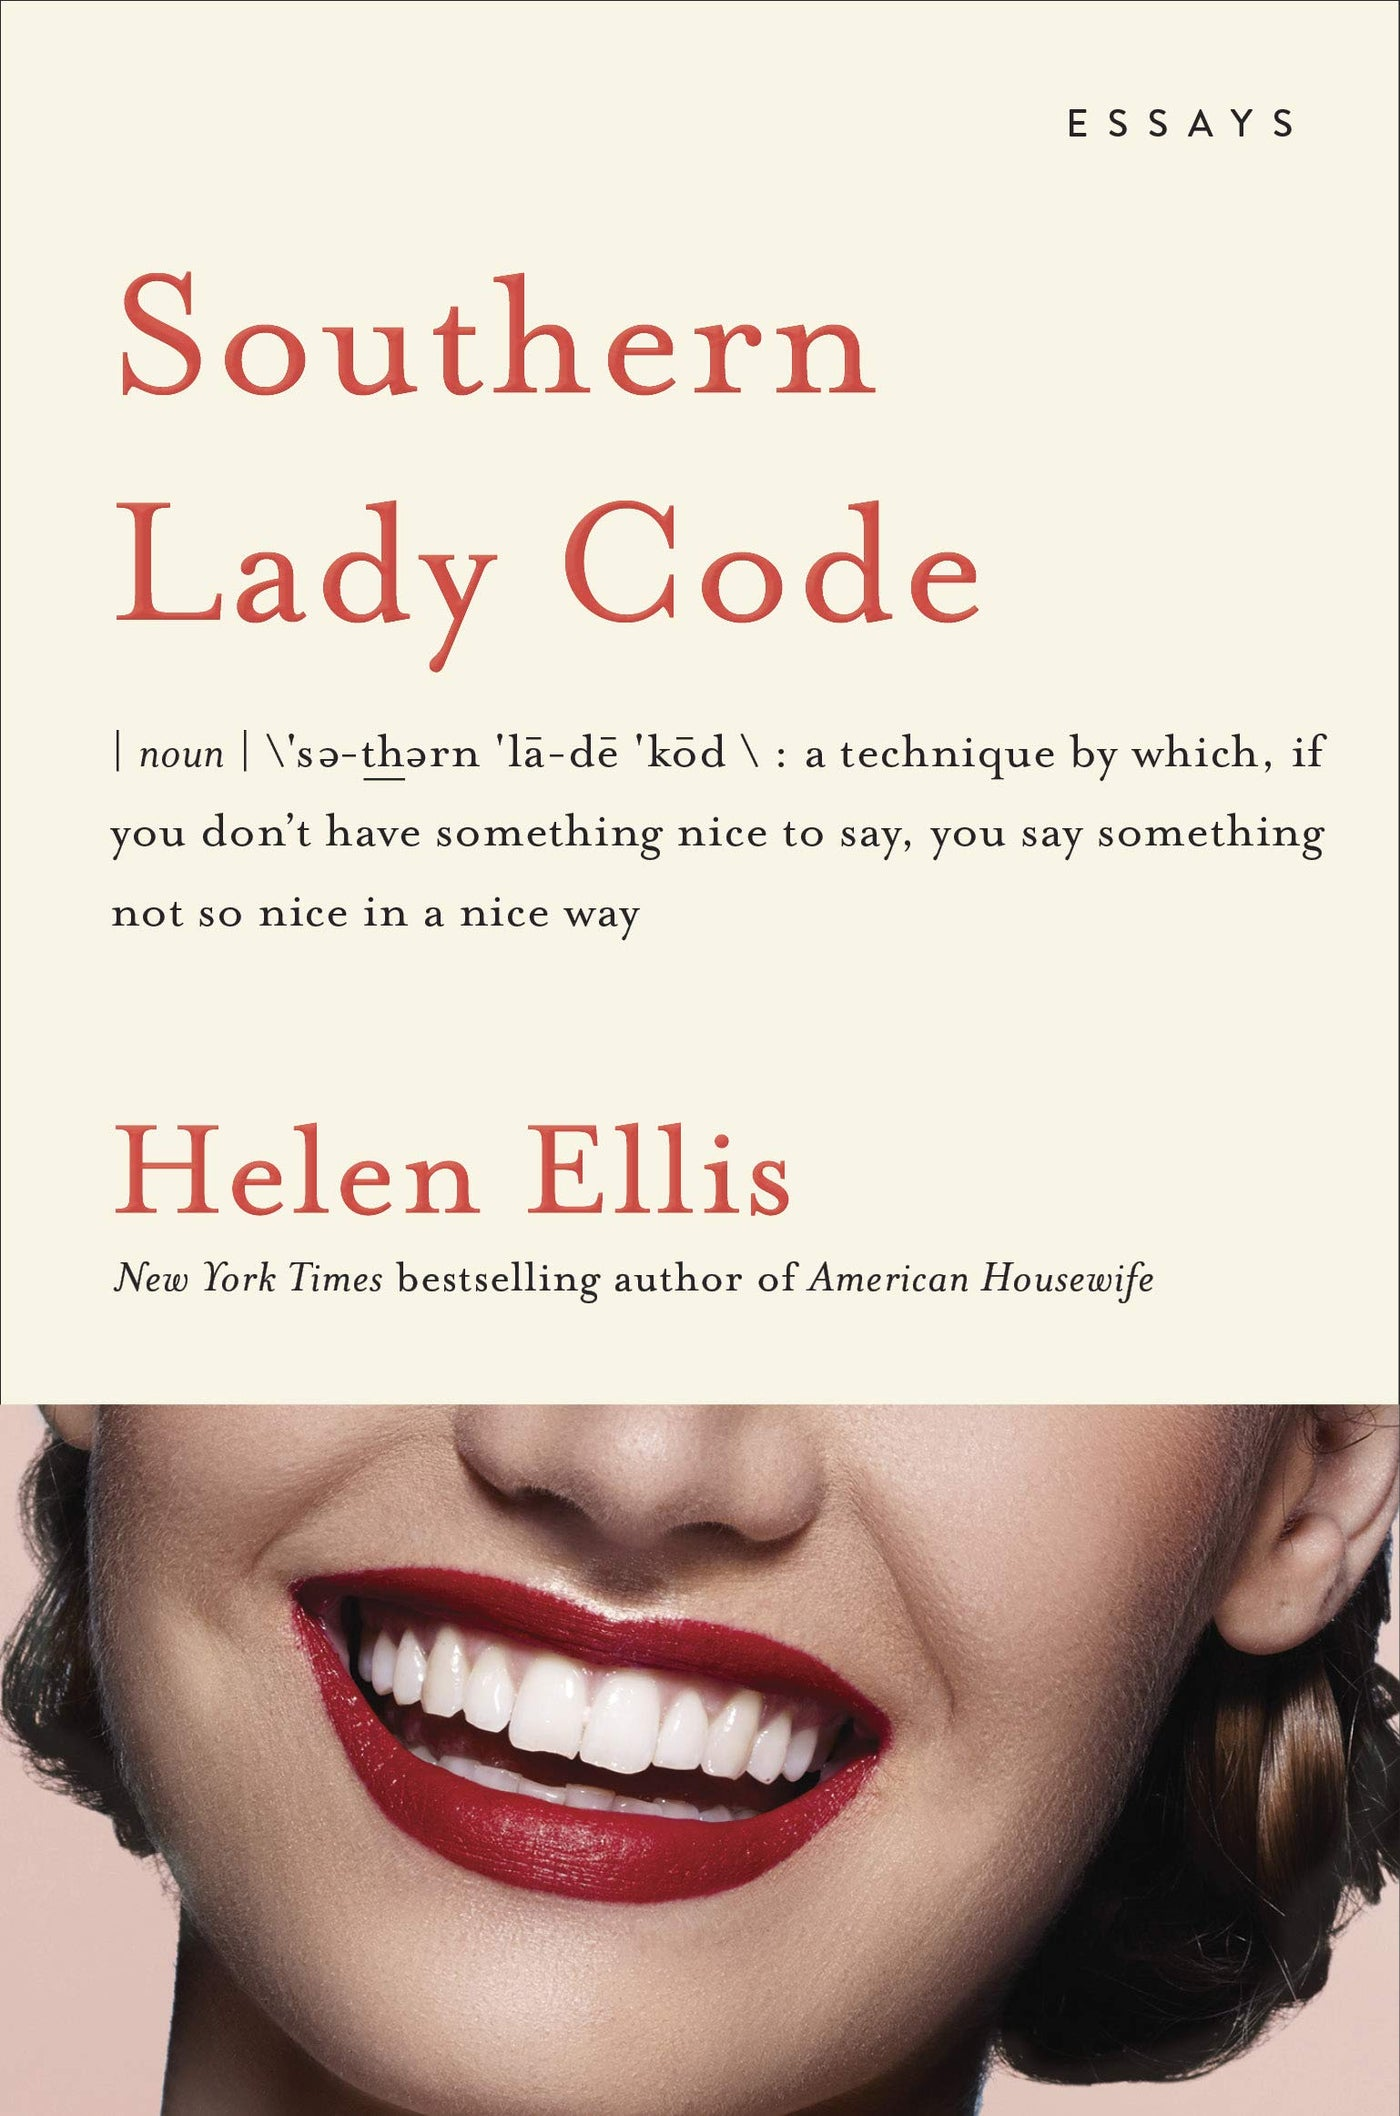 Southern Lady Code: Essays by Helen Ellis